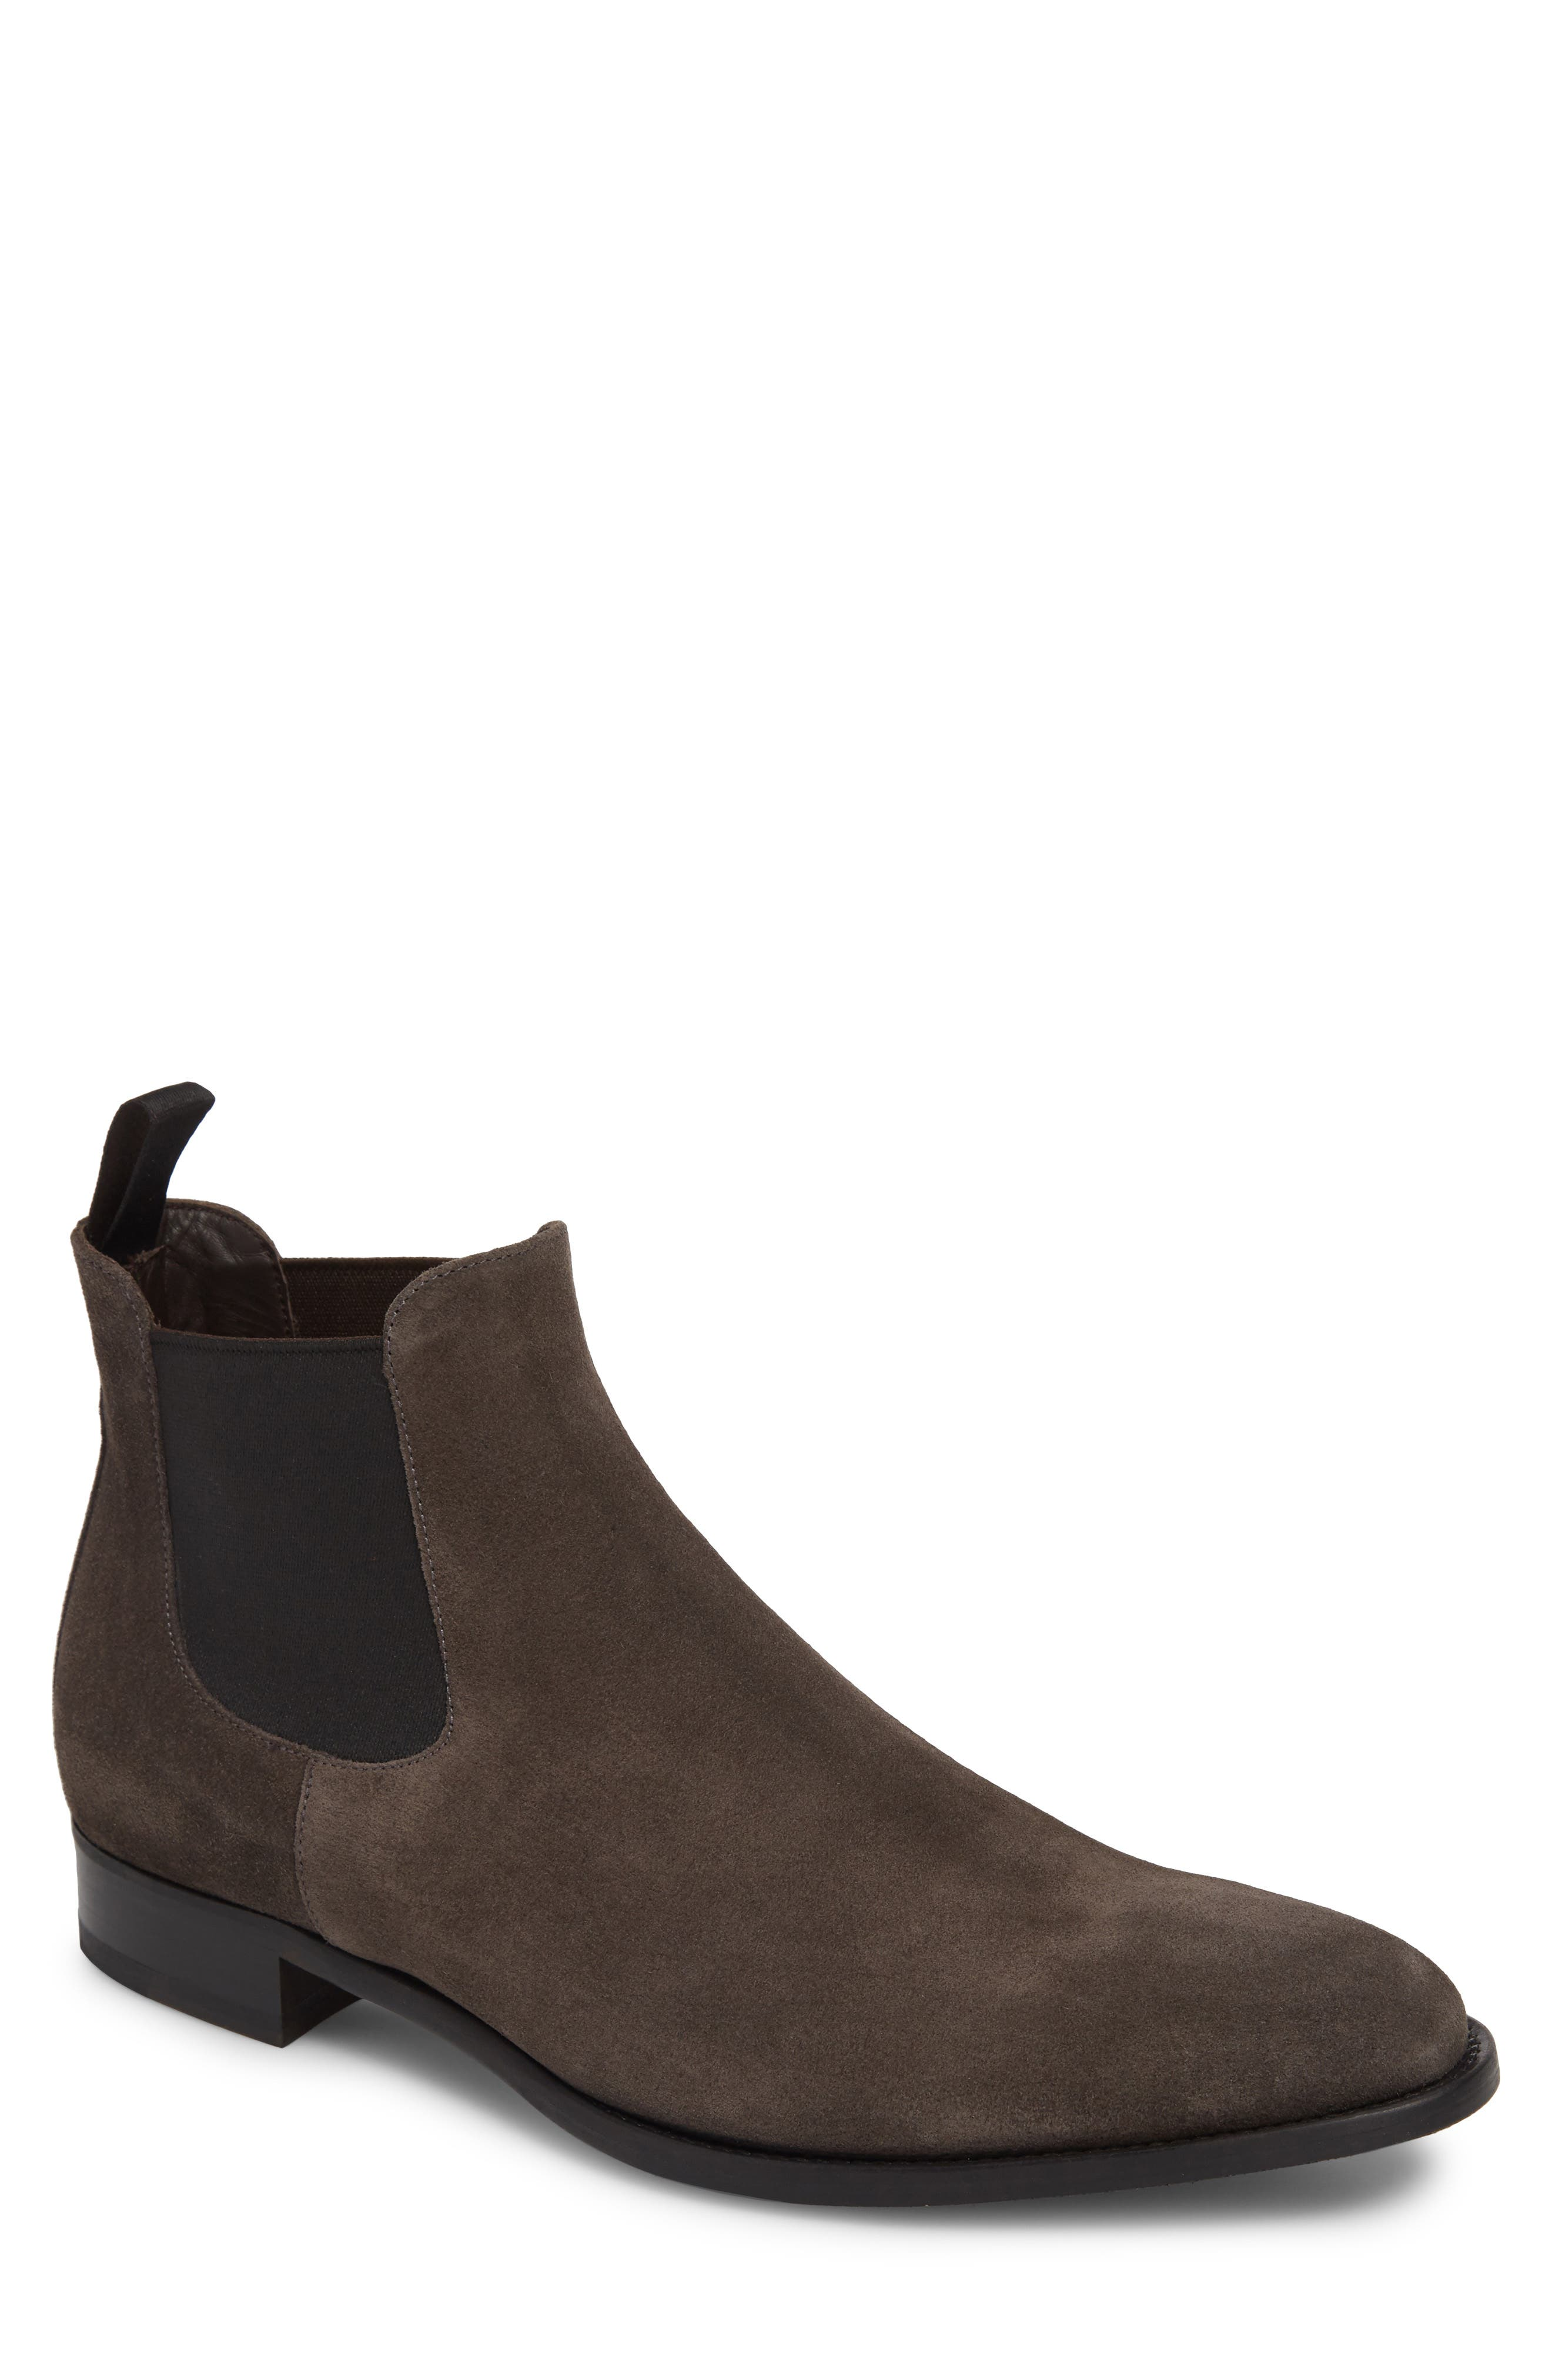 Men's To Boot New York Shoes | Nordstrom